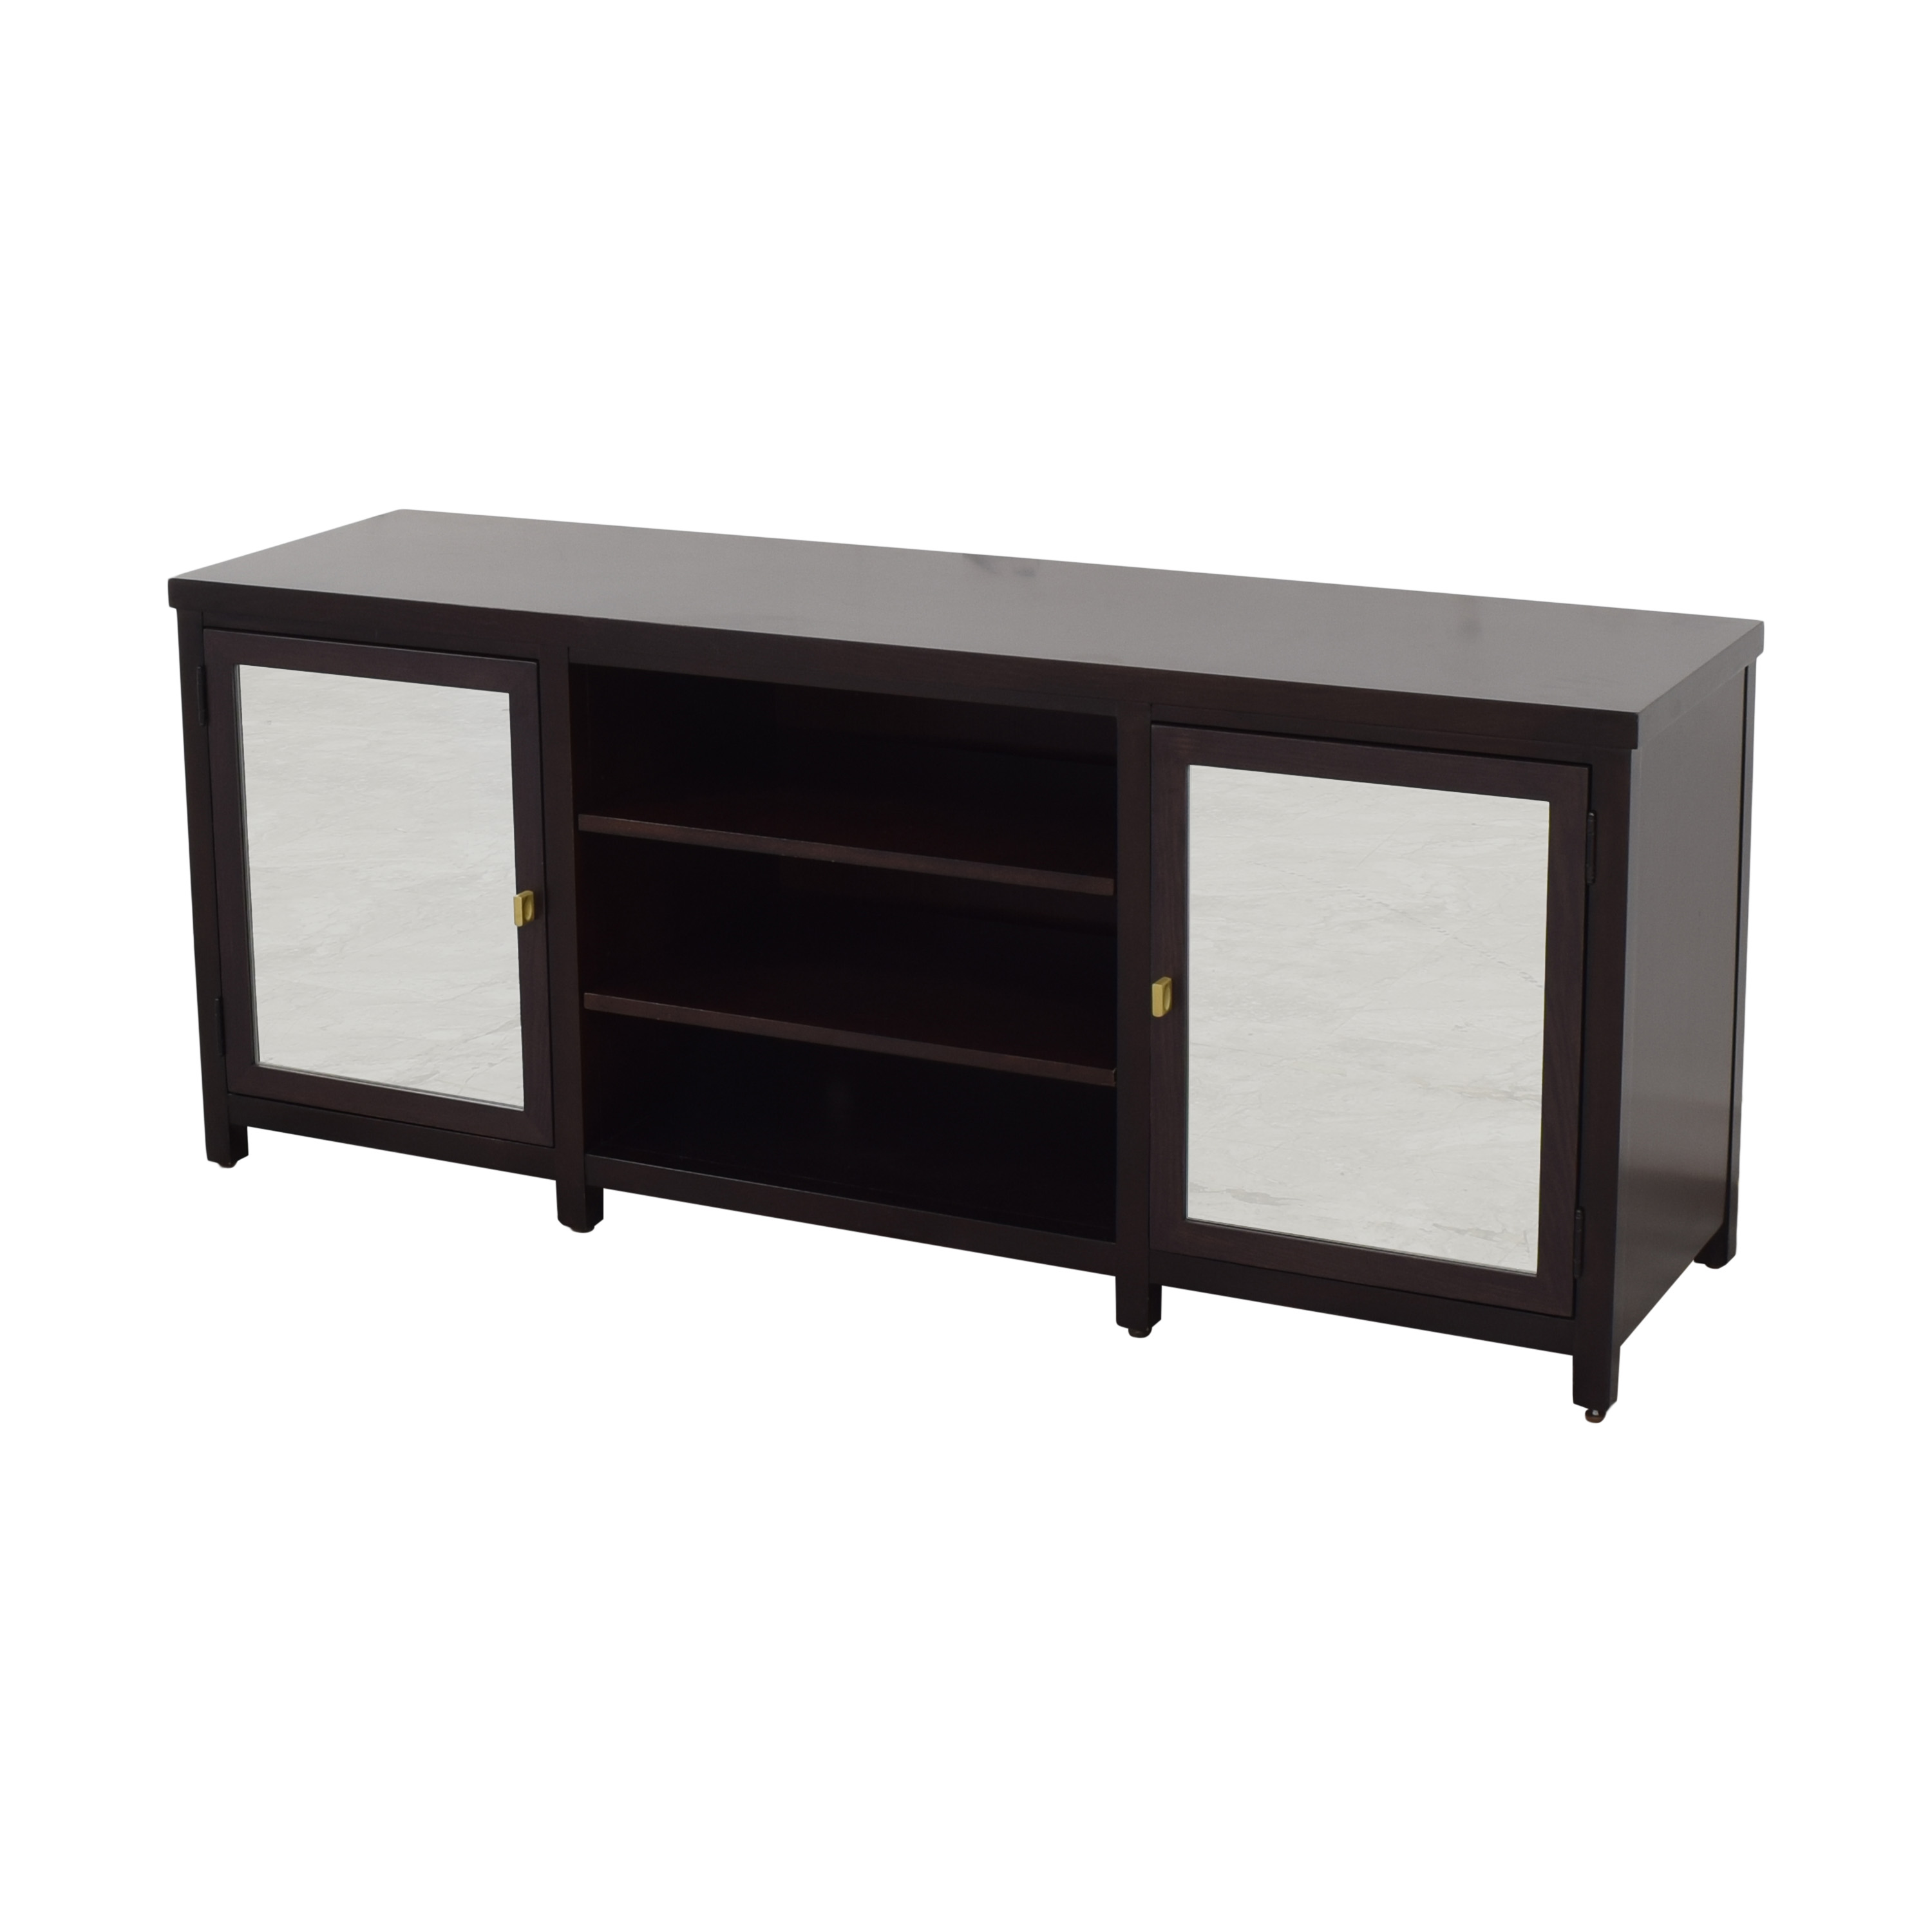 Mitchell Gold + Bob Williams Mitchell Gold + Bob Williams Media Cabinet with Mirrored Doors pa